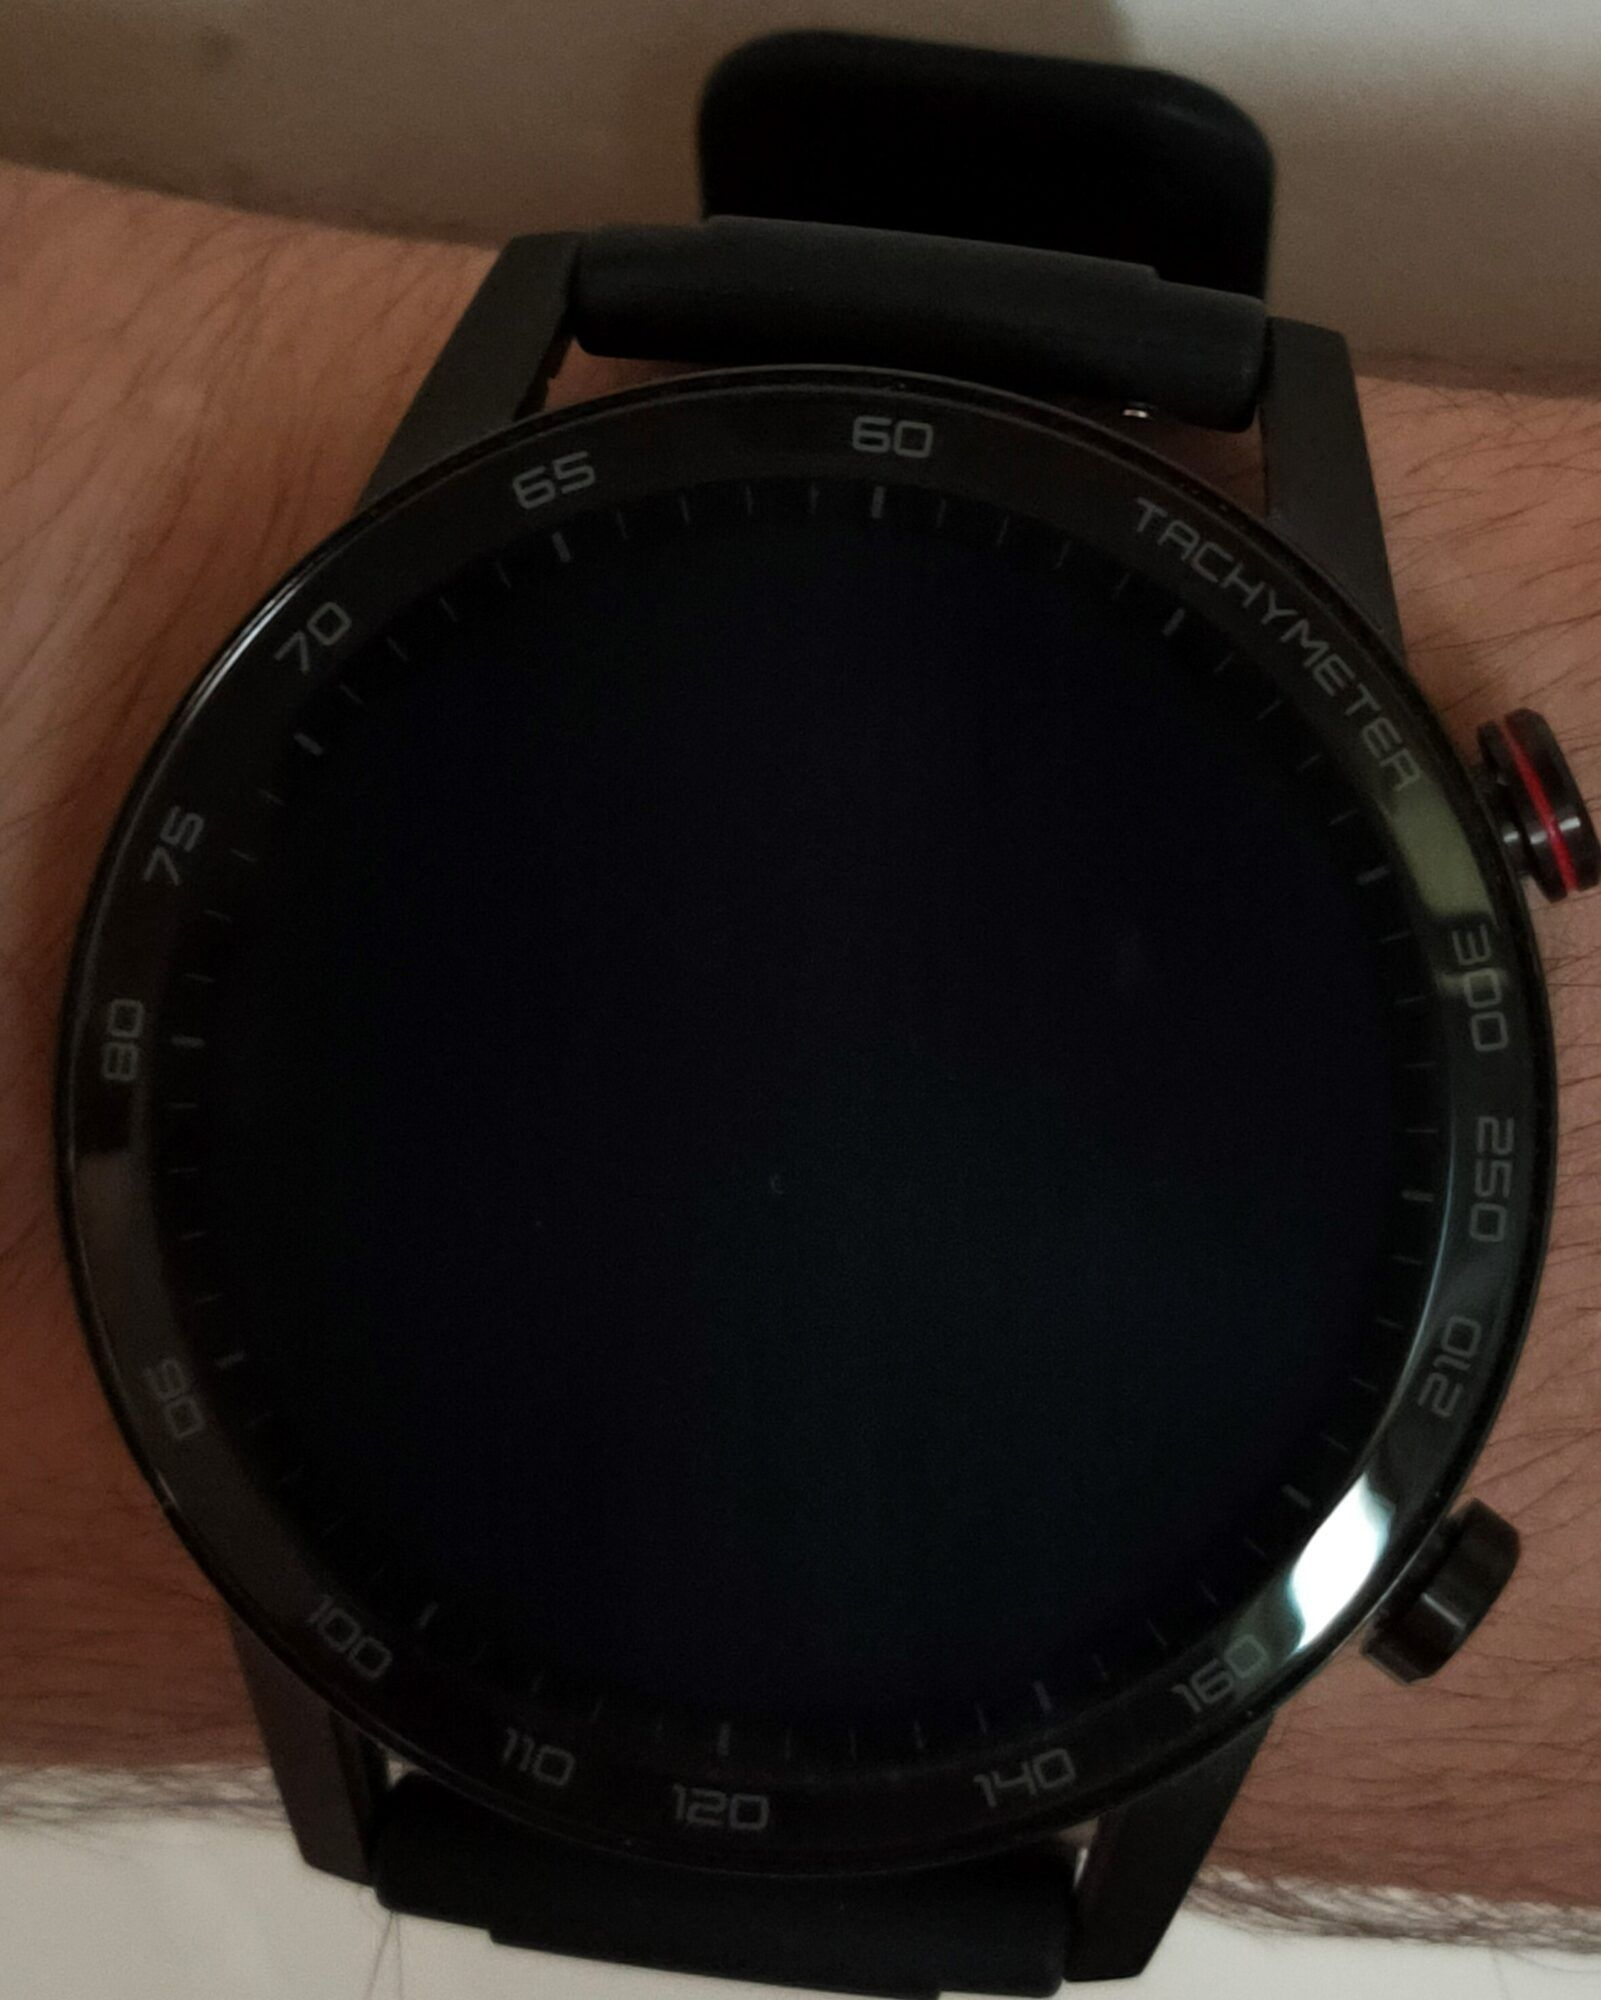 Honor MagicWatch 2, Test – Honor MagicWatch 2 46mm : une Watch GT 2 revisitée